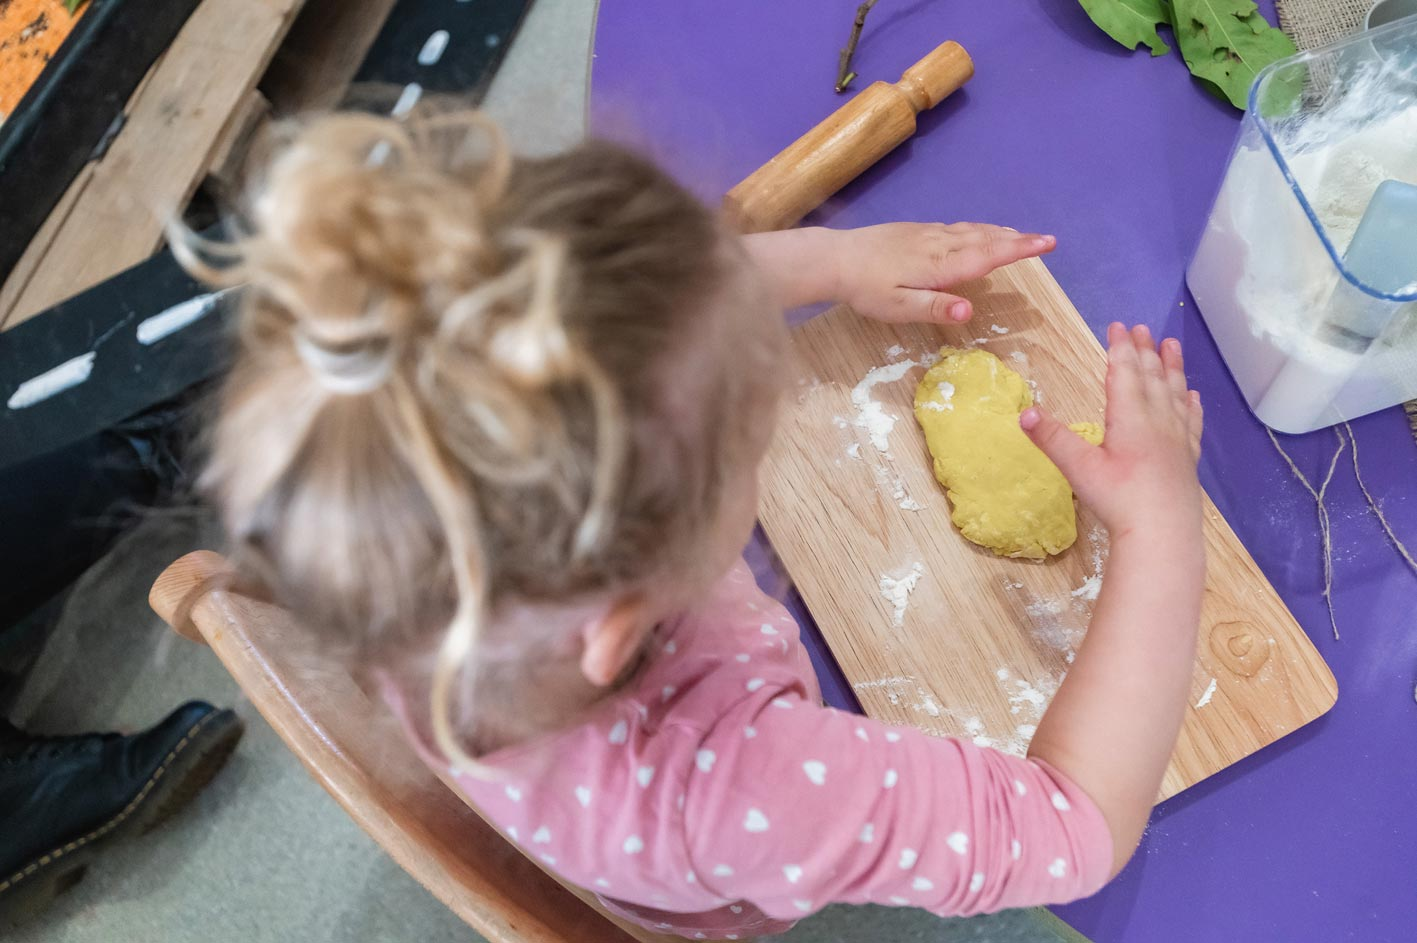 Dough-making at Leaps & Bounds Day Nursery in Birmingham.